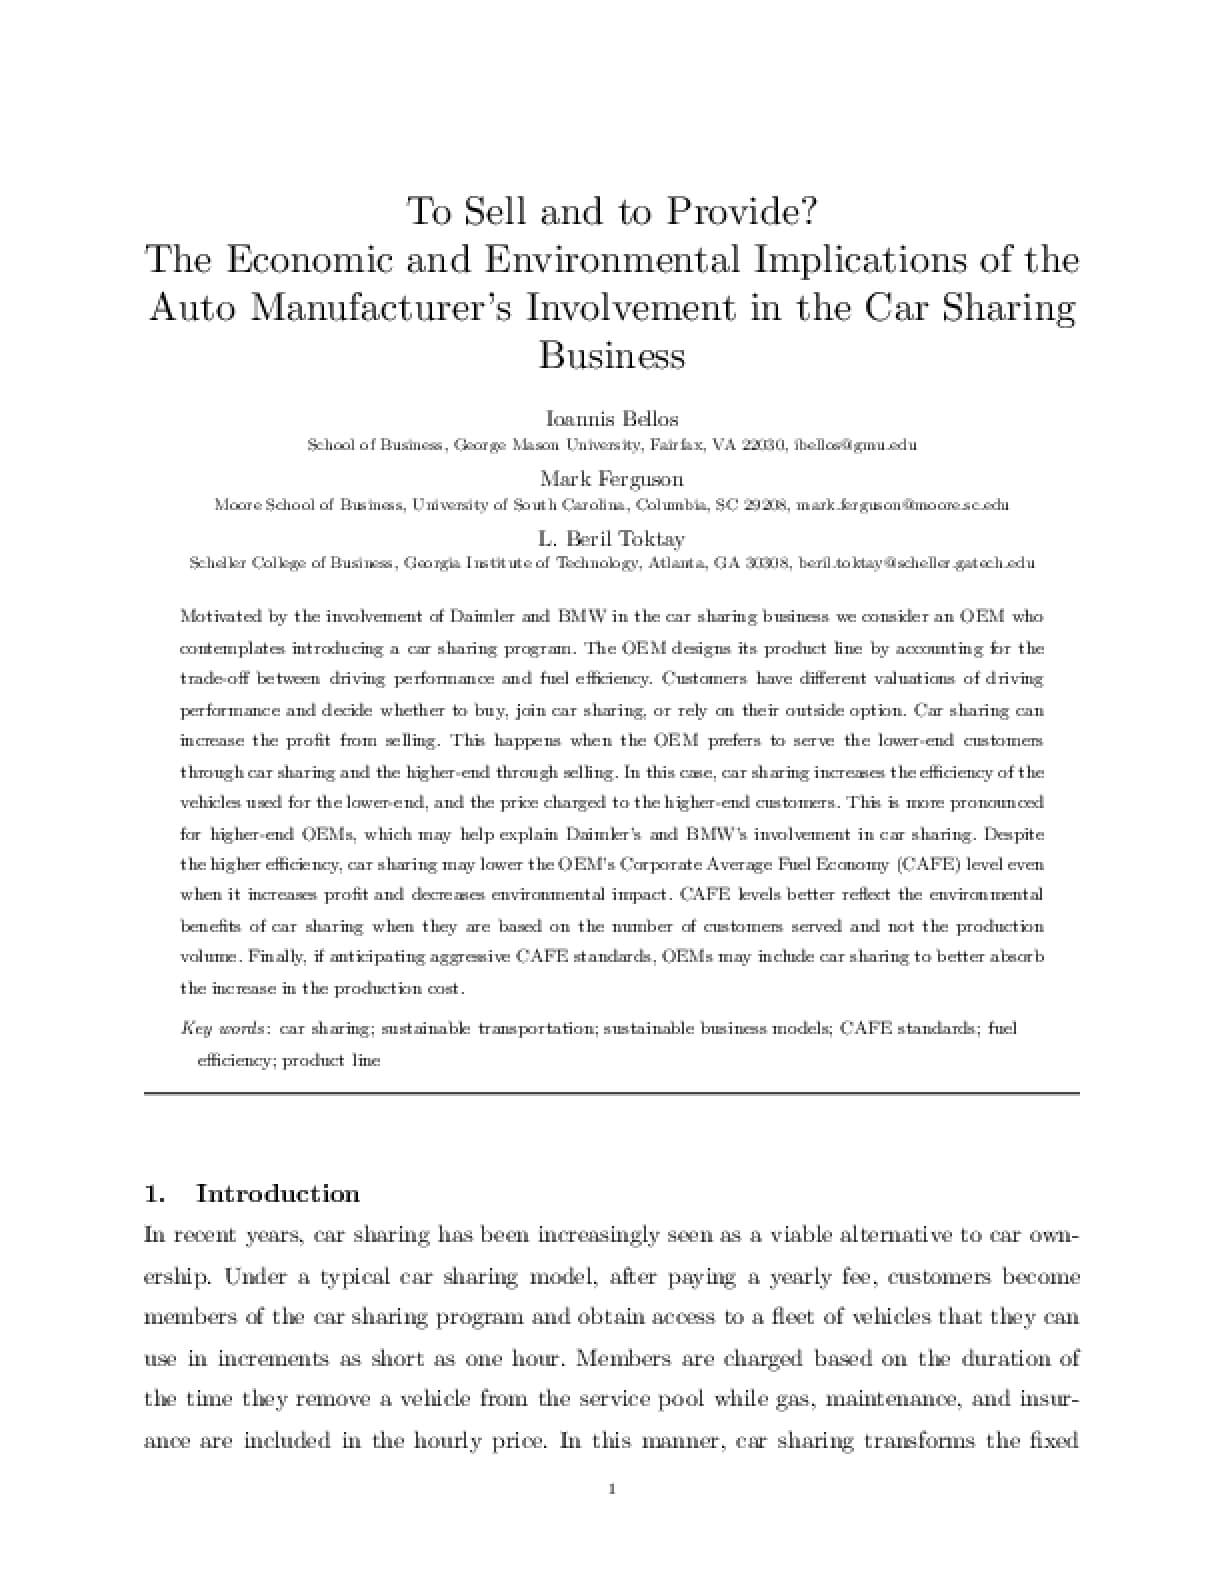 To Sell and to Provide? The Economic and Environmental Implications of the Auto Manufacturer's Involvement in the Car Sharing Business